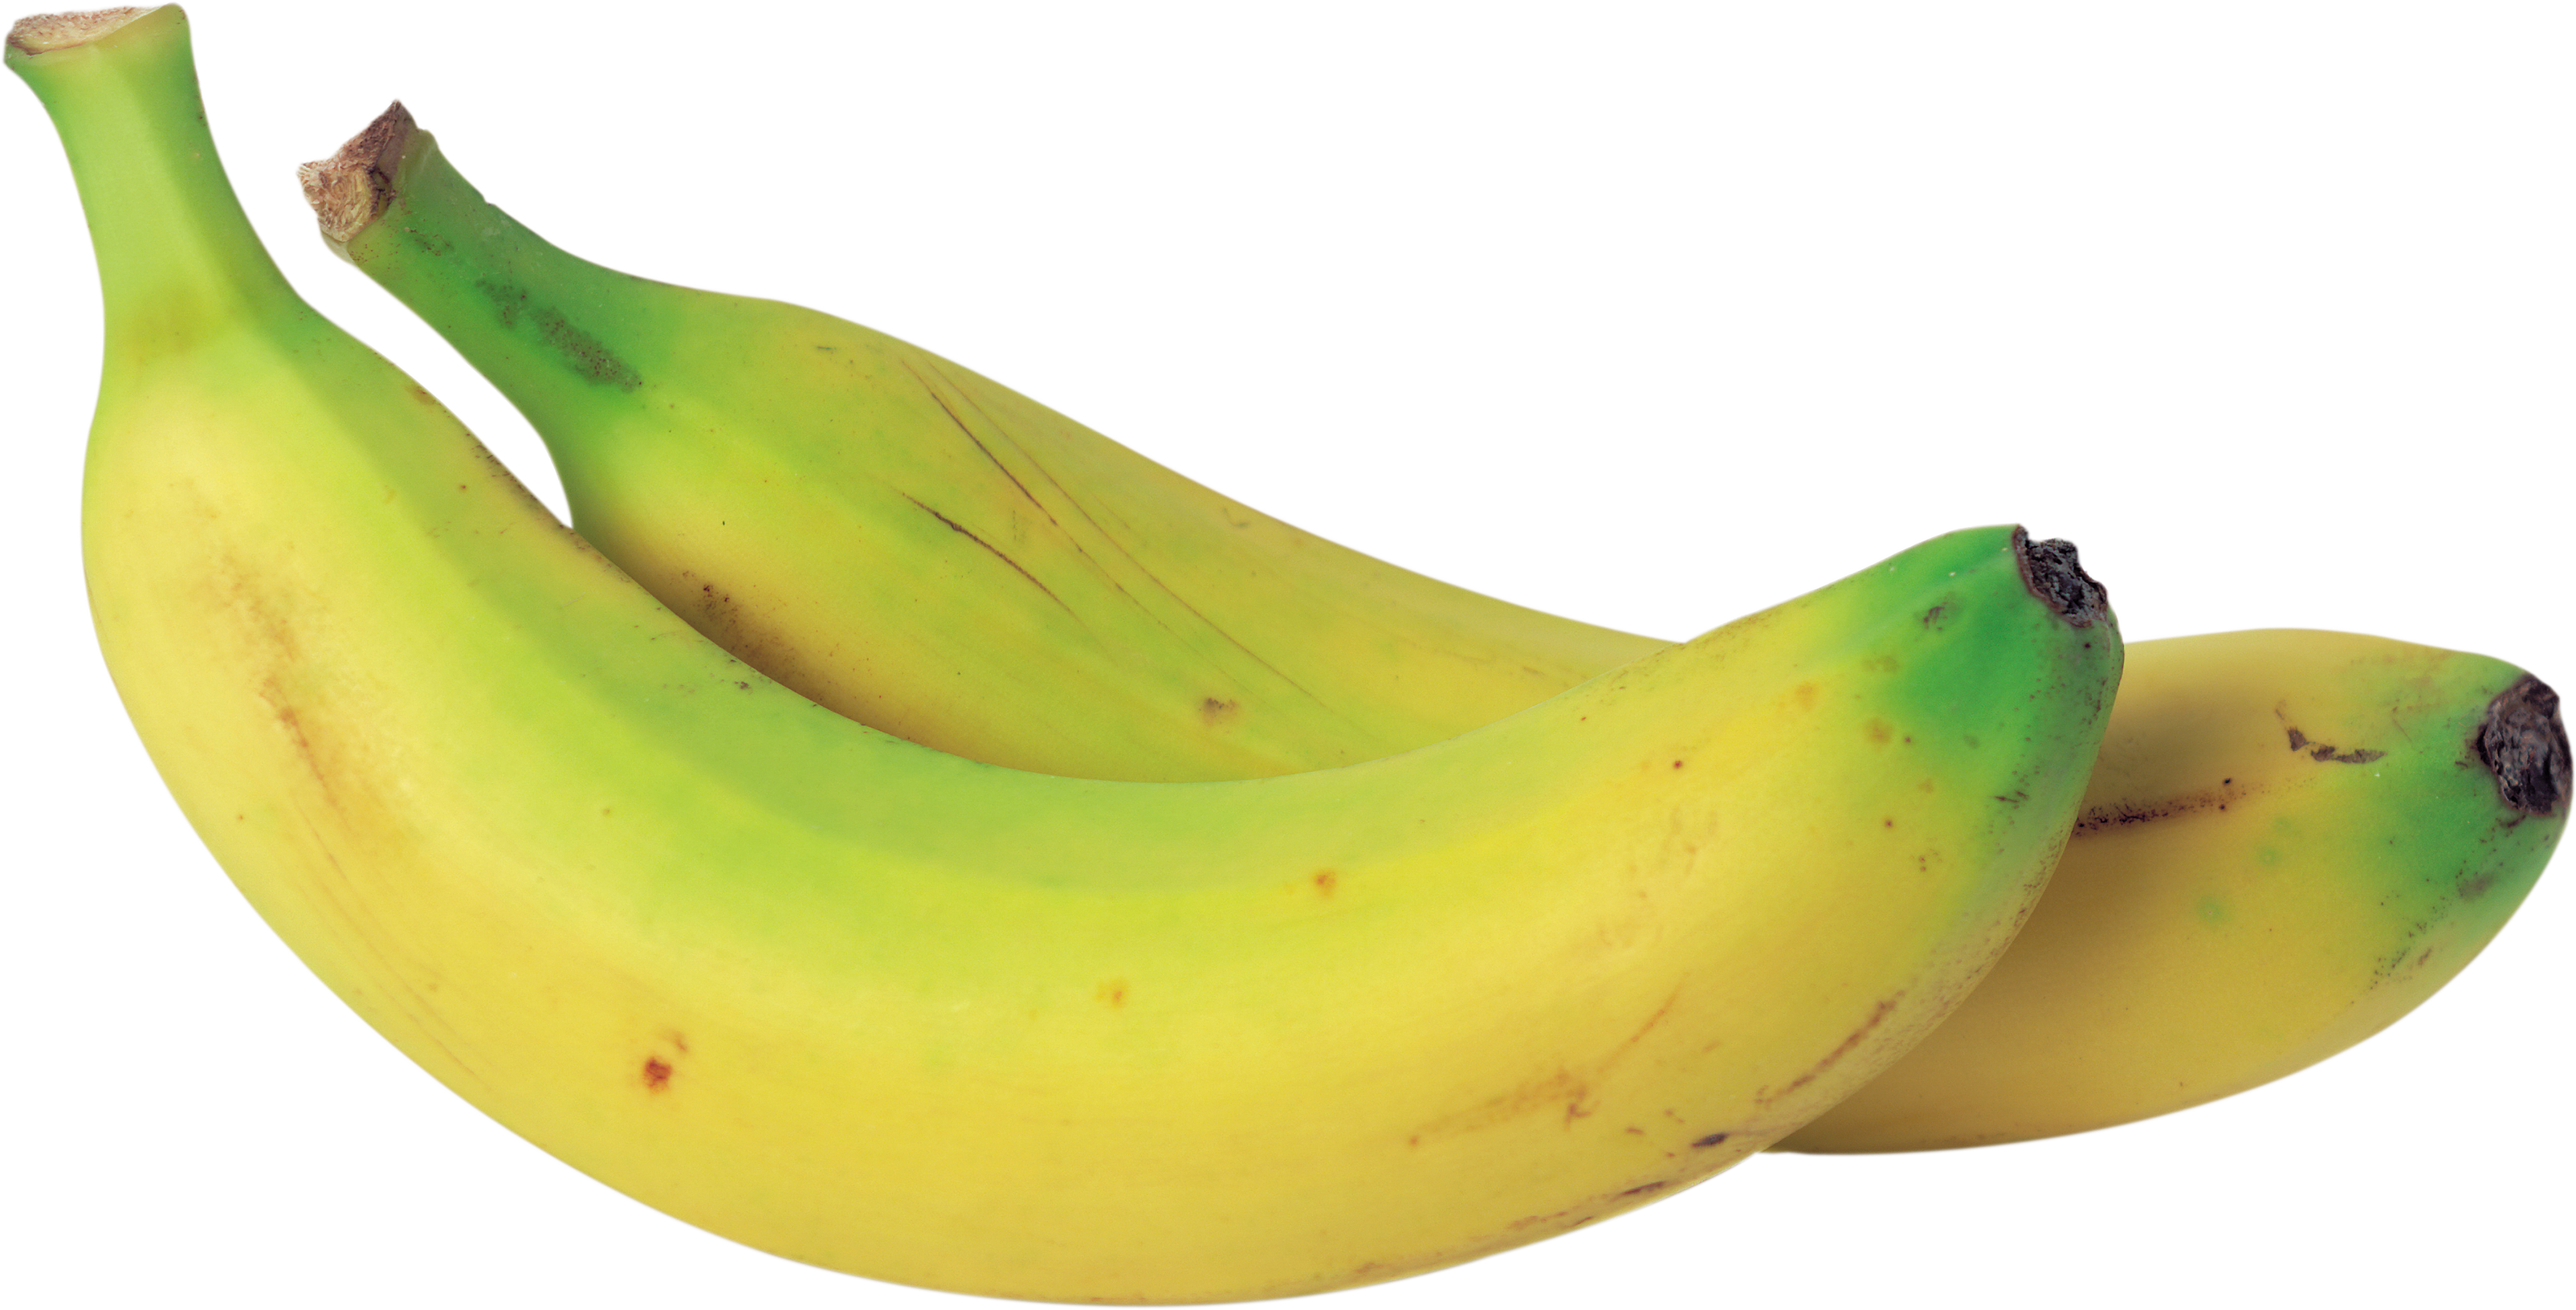 Banana PNG image, free picture downloads, bananas.